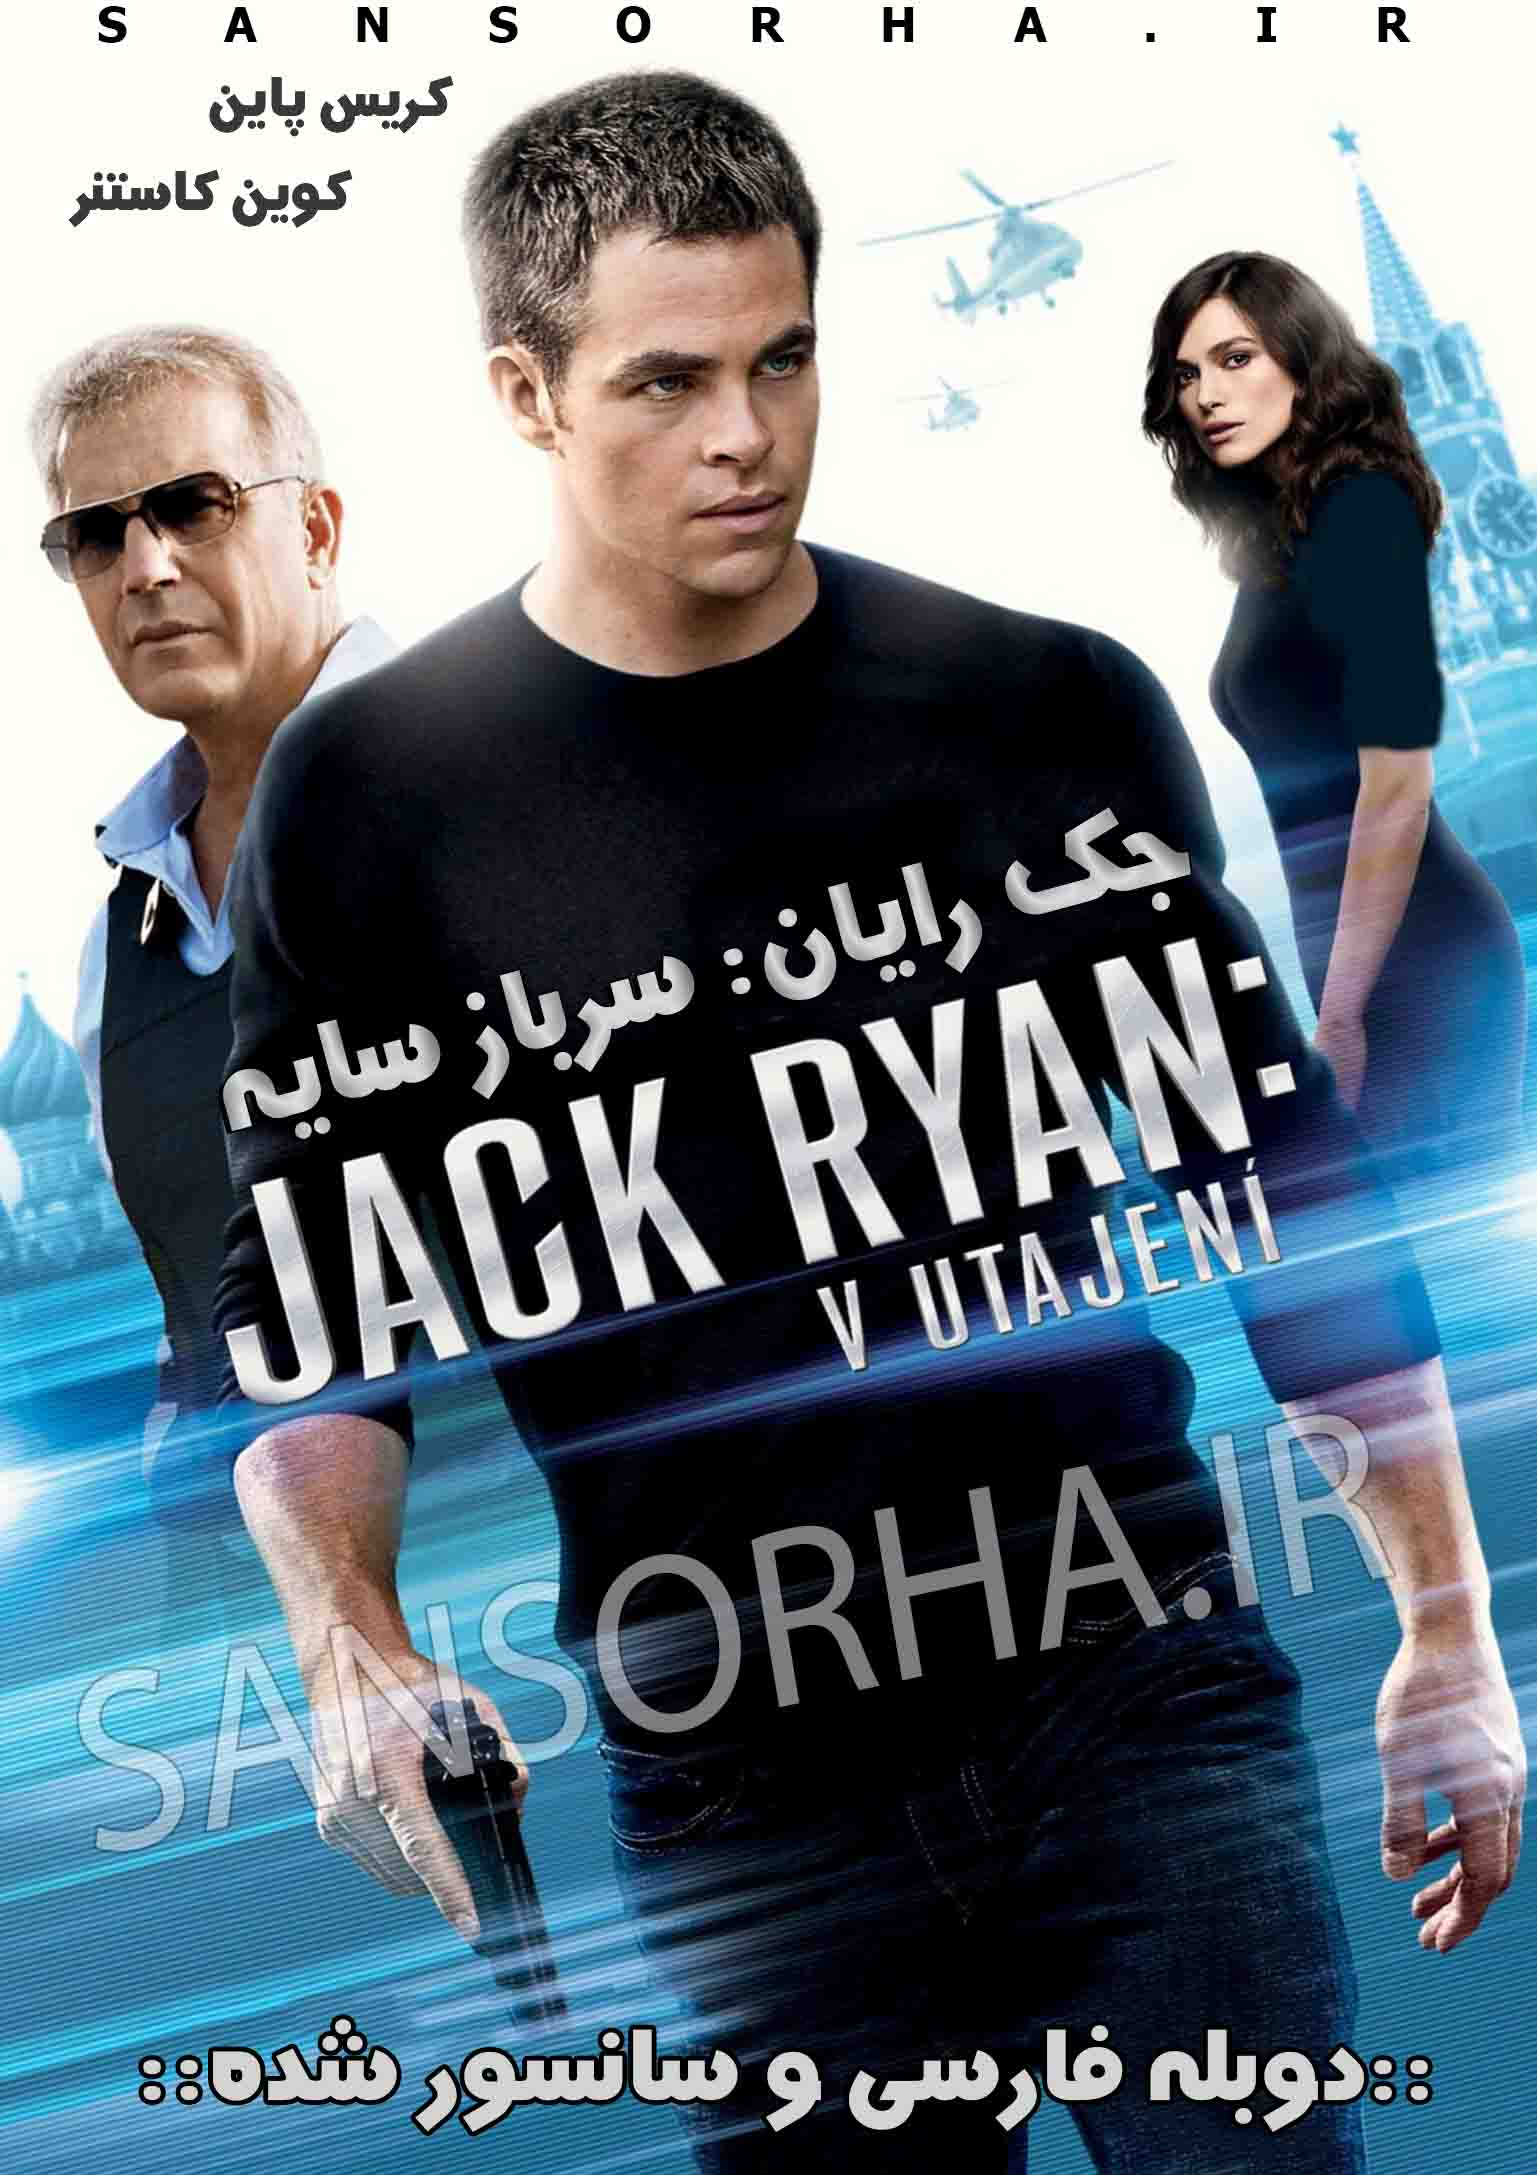 Jack Ryan Shadow Recruit 2014